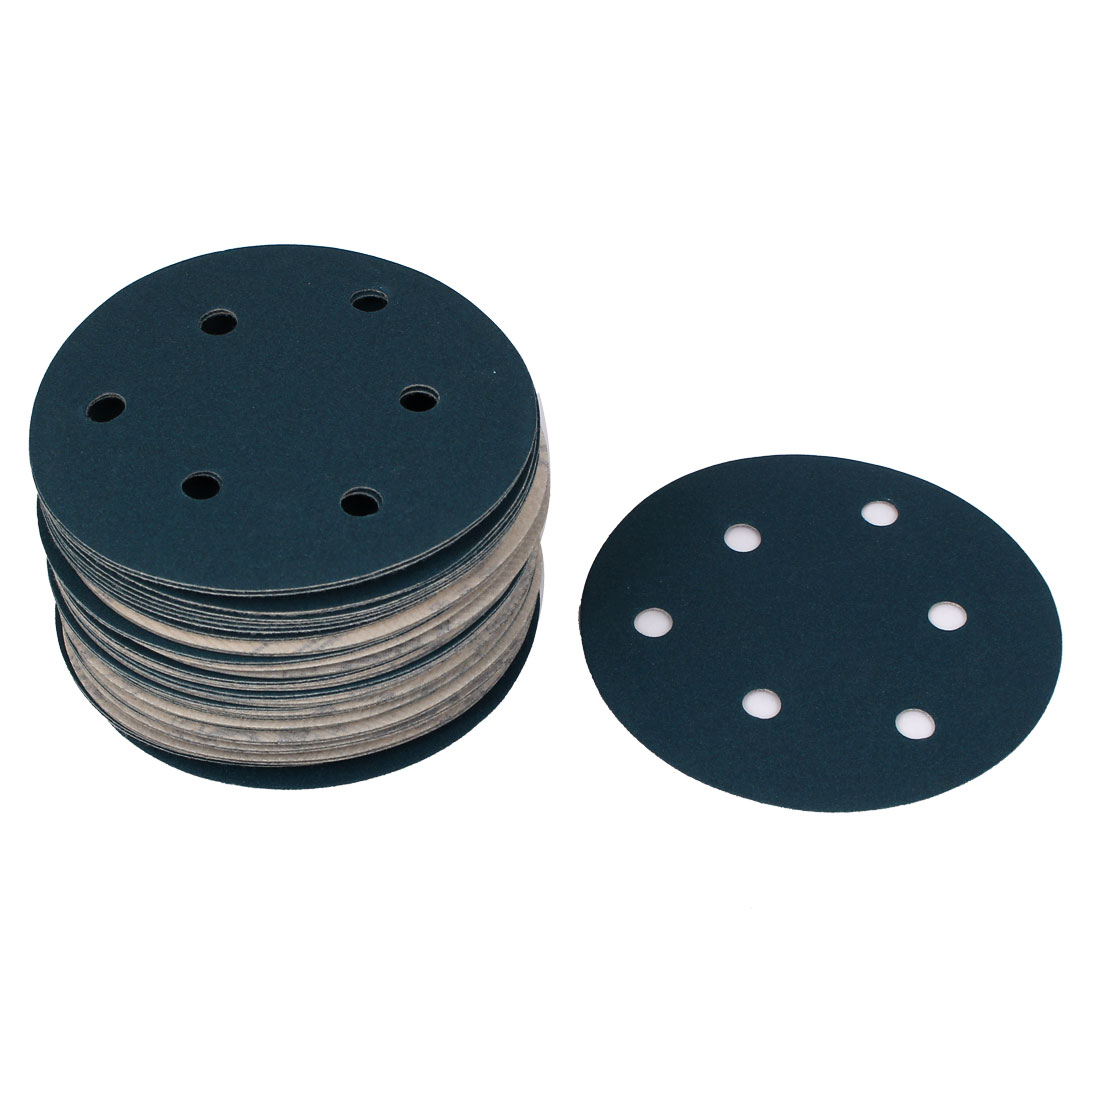 "5"" Sandpaper Auto Car Paint Polishing Sanding Disc Hook and Loop Fastener 6 Holes 240 Grit 50pcs"